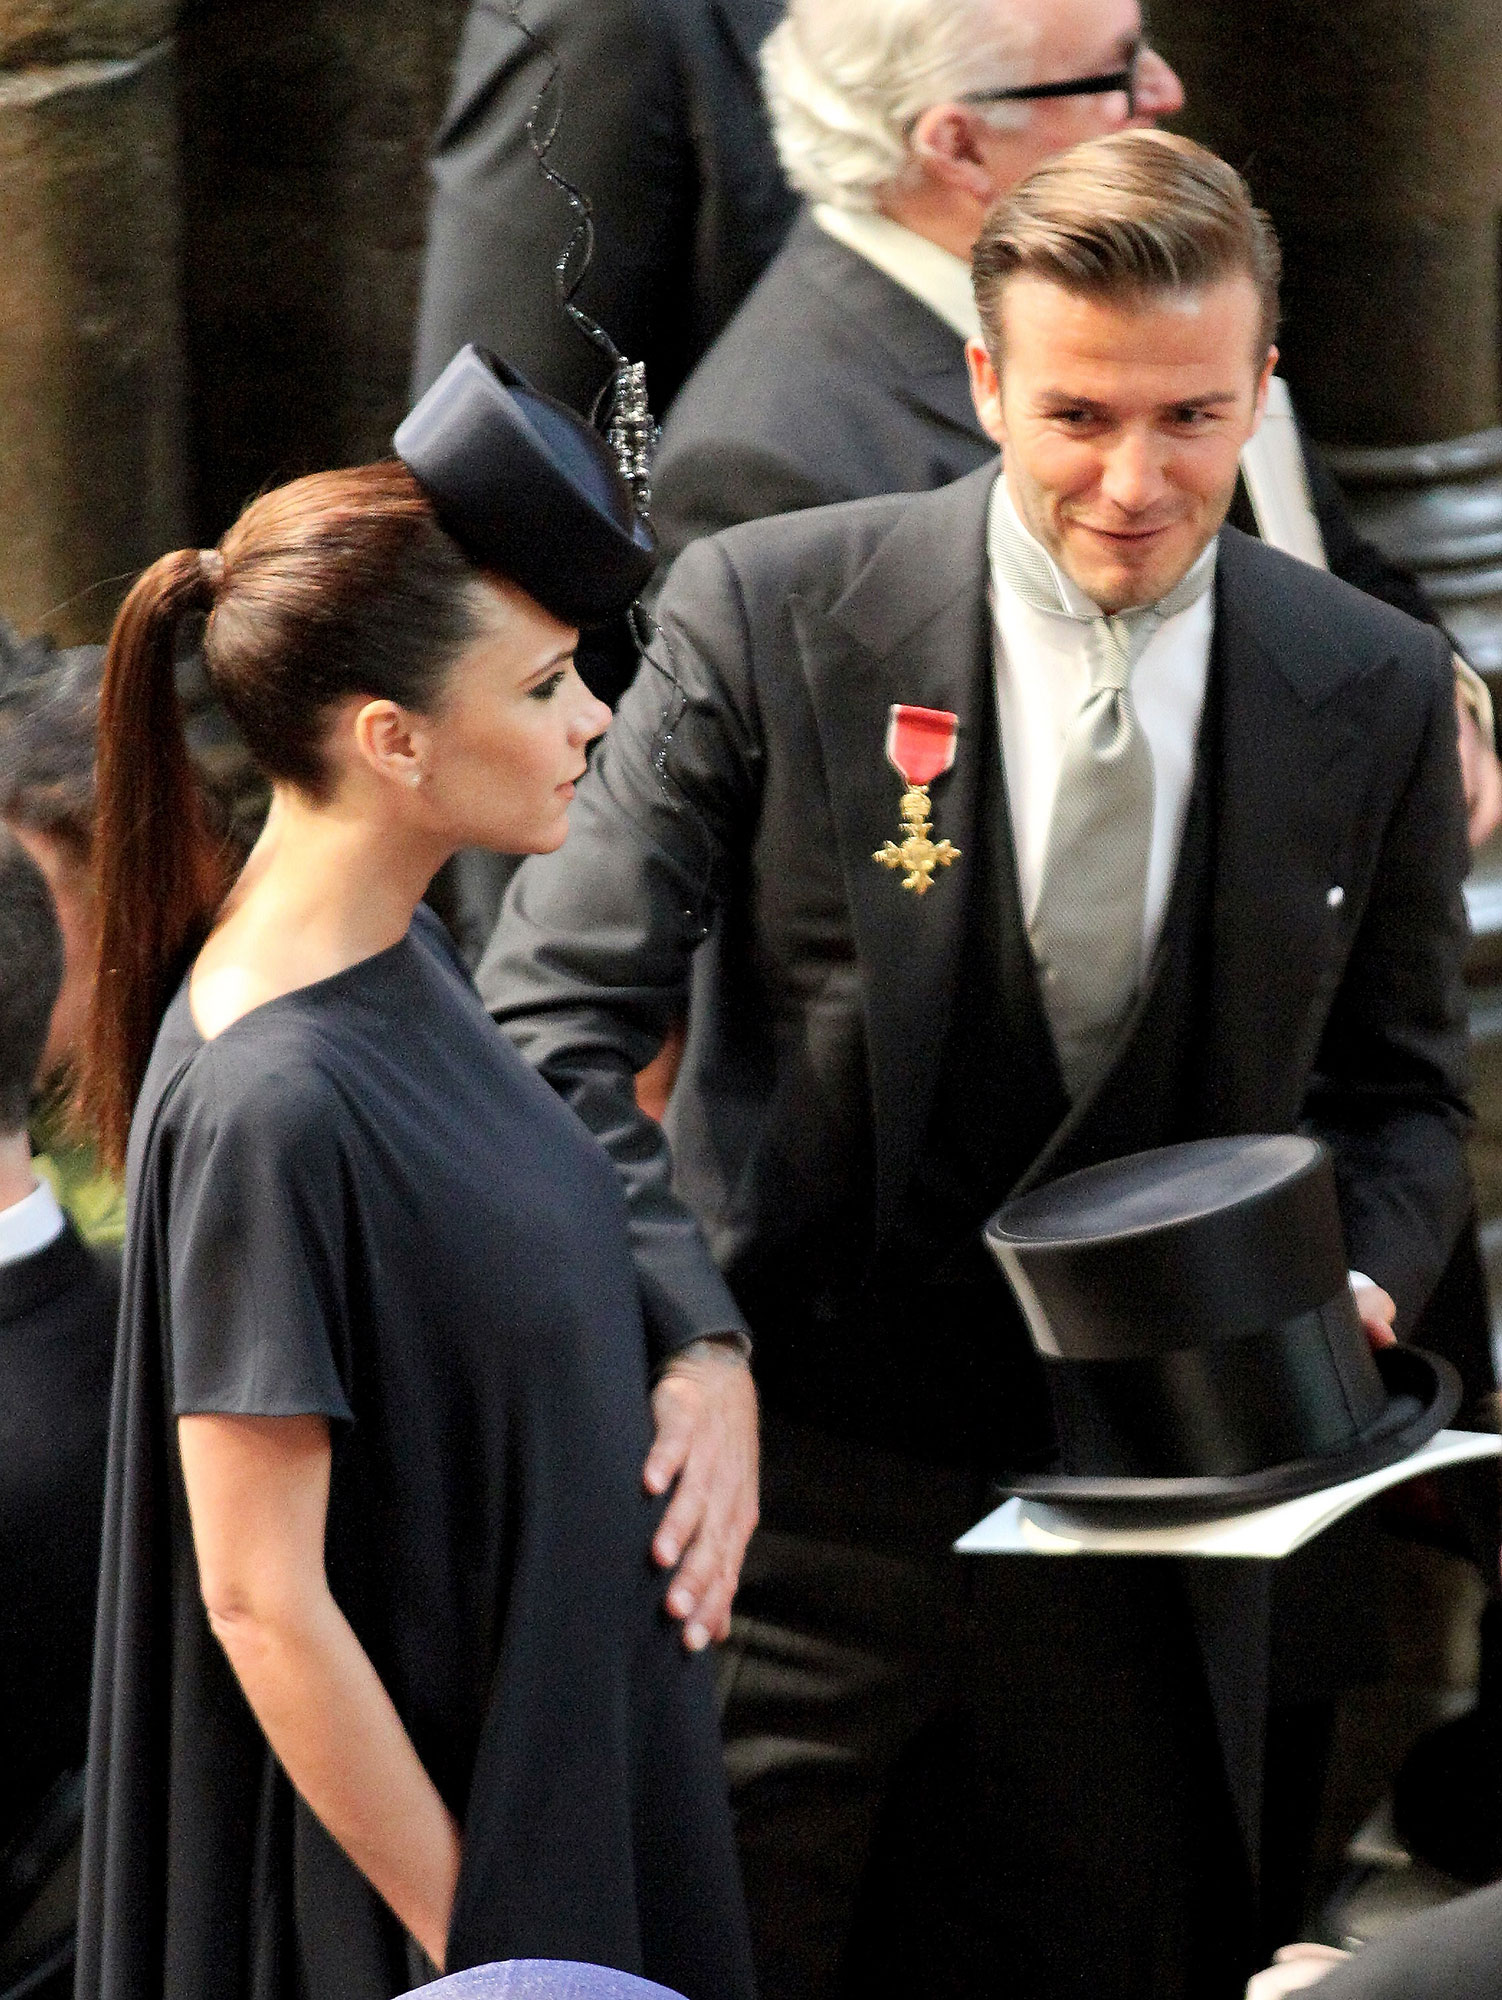 "Victoria and David Beckham timeline gallery - By early 2011, a fourth baby was on the way for Posh Spice and her husband. ""David and Victoria Beckham are delighted to confirm they are expecting their fourth child in the summer,"" a spokeswoman for the musician said in a statement."